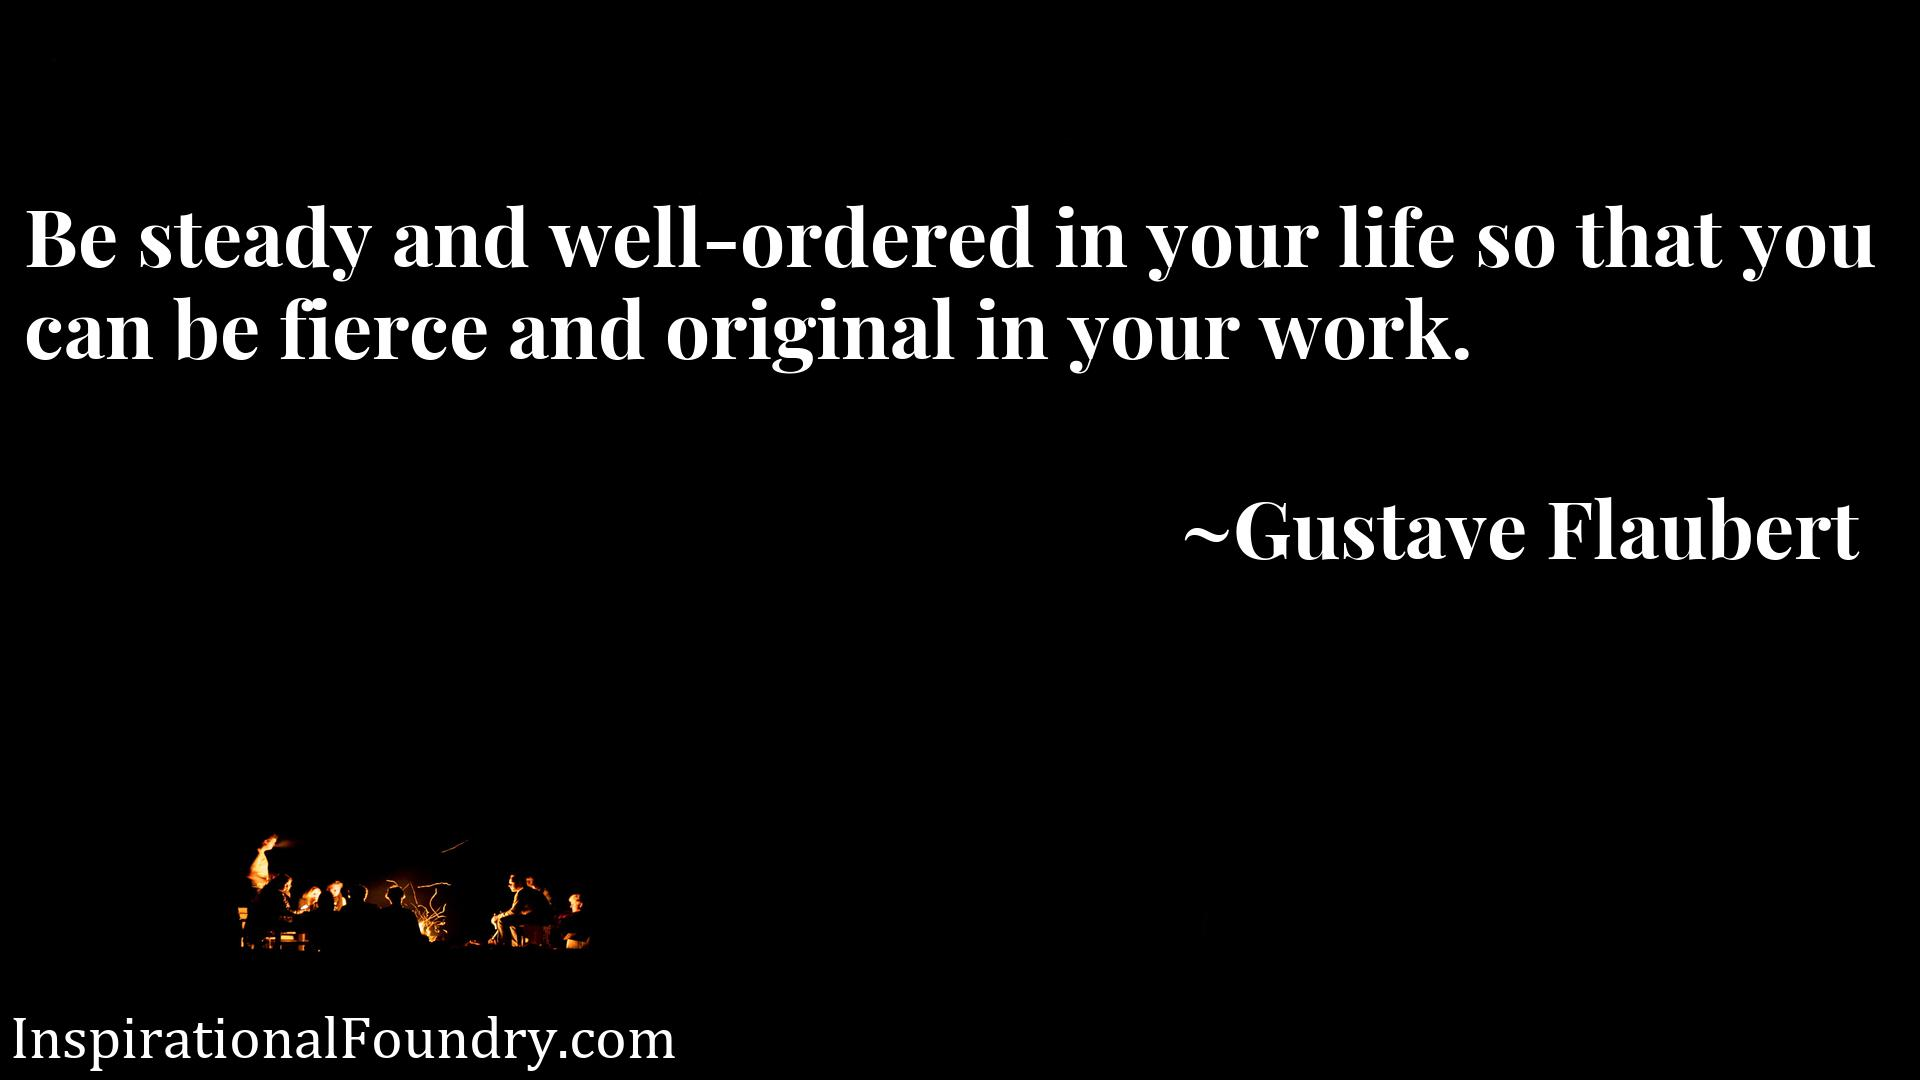 Be steady and well-ordered in your life so that you can be fierce and original in your work.